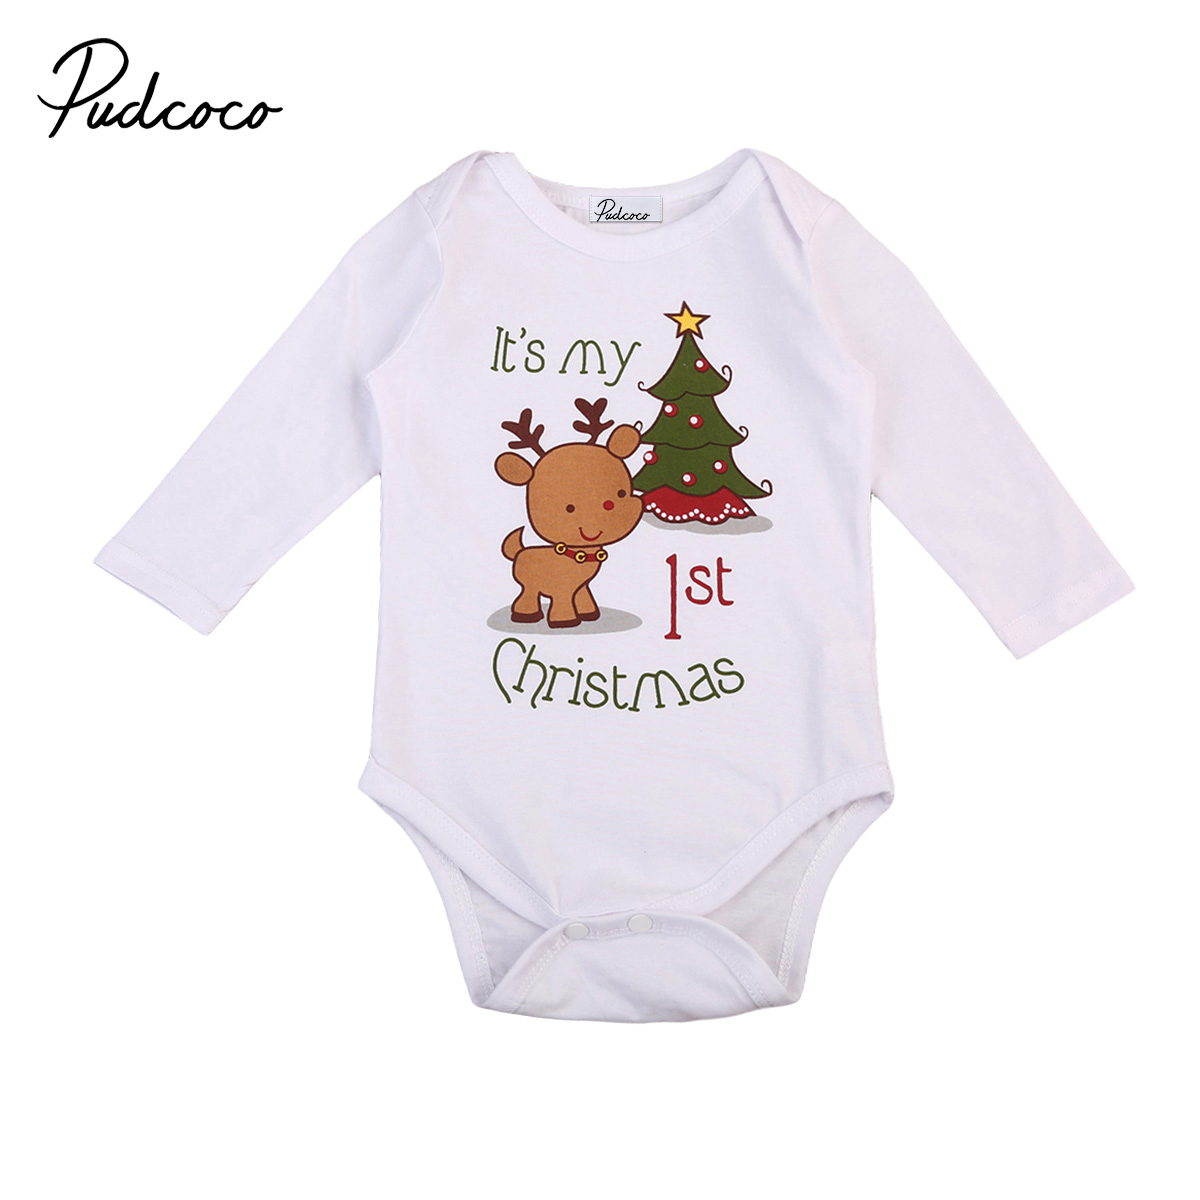 ed84fbae1352 2018 Christmas Baby Girls Boys Clothes Newborn Infant baby Striped ...